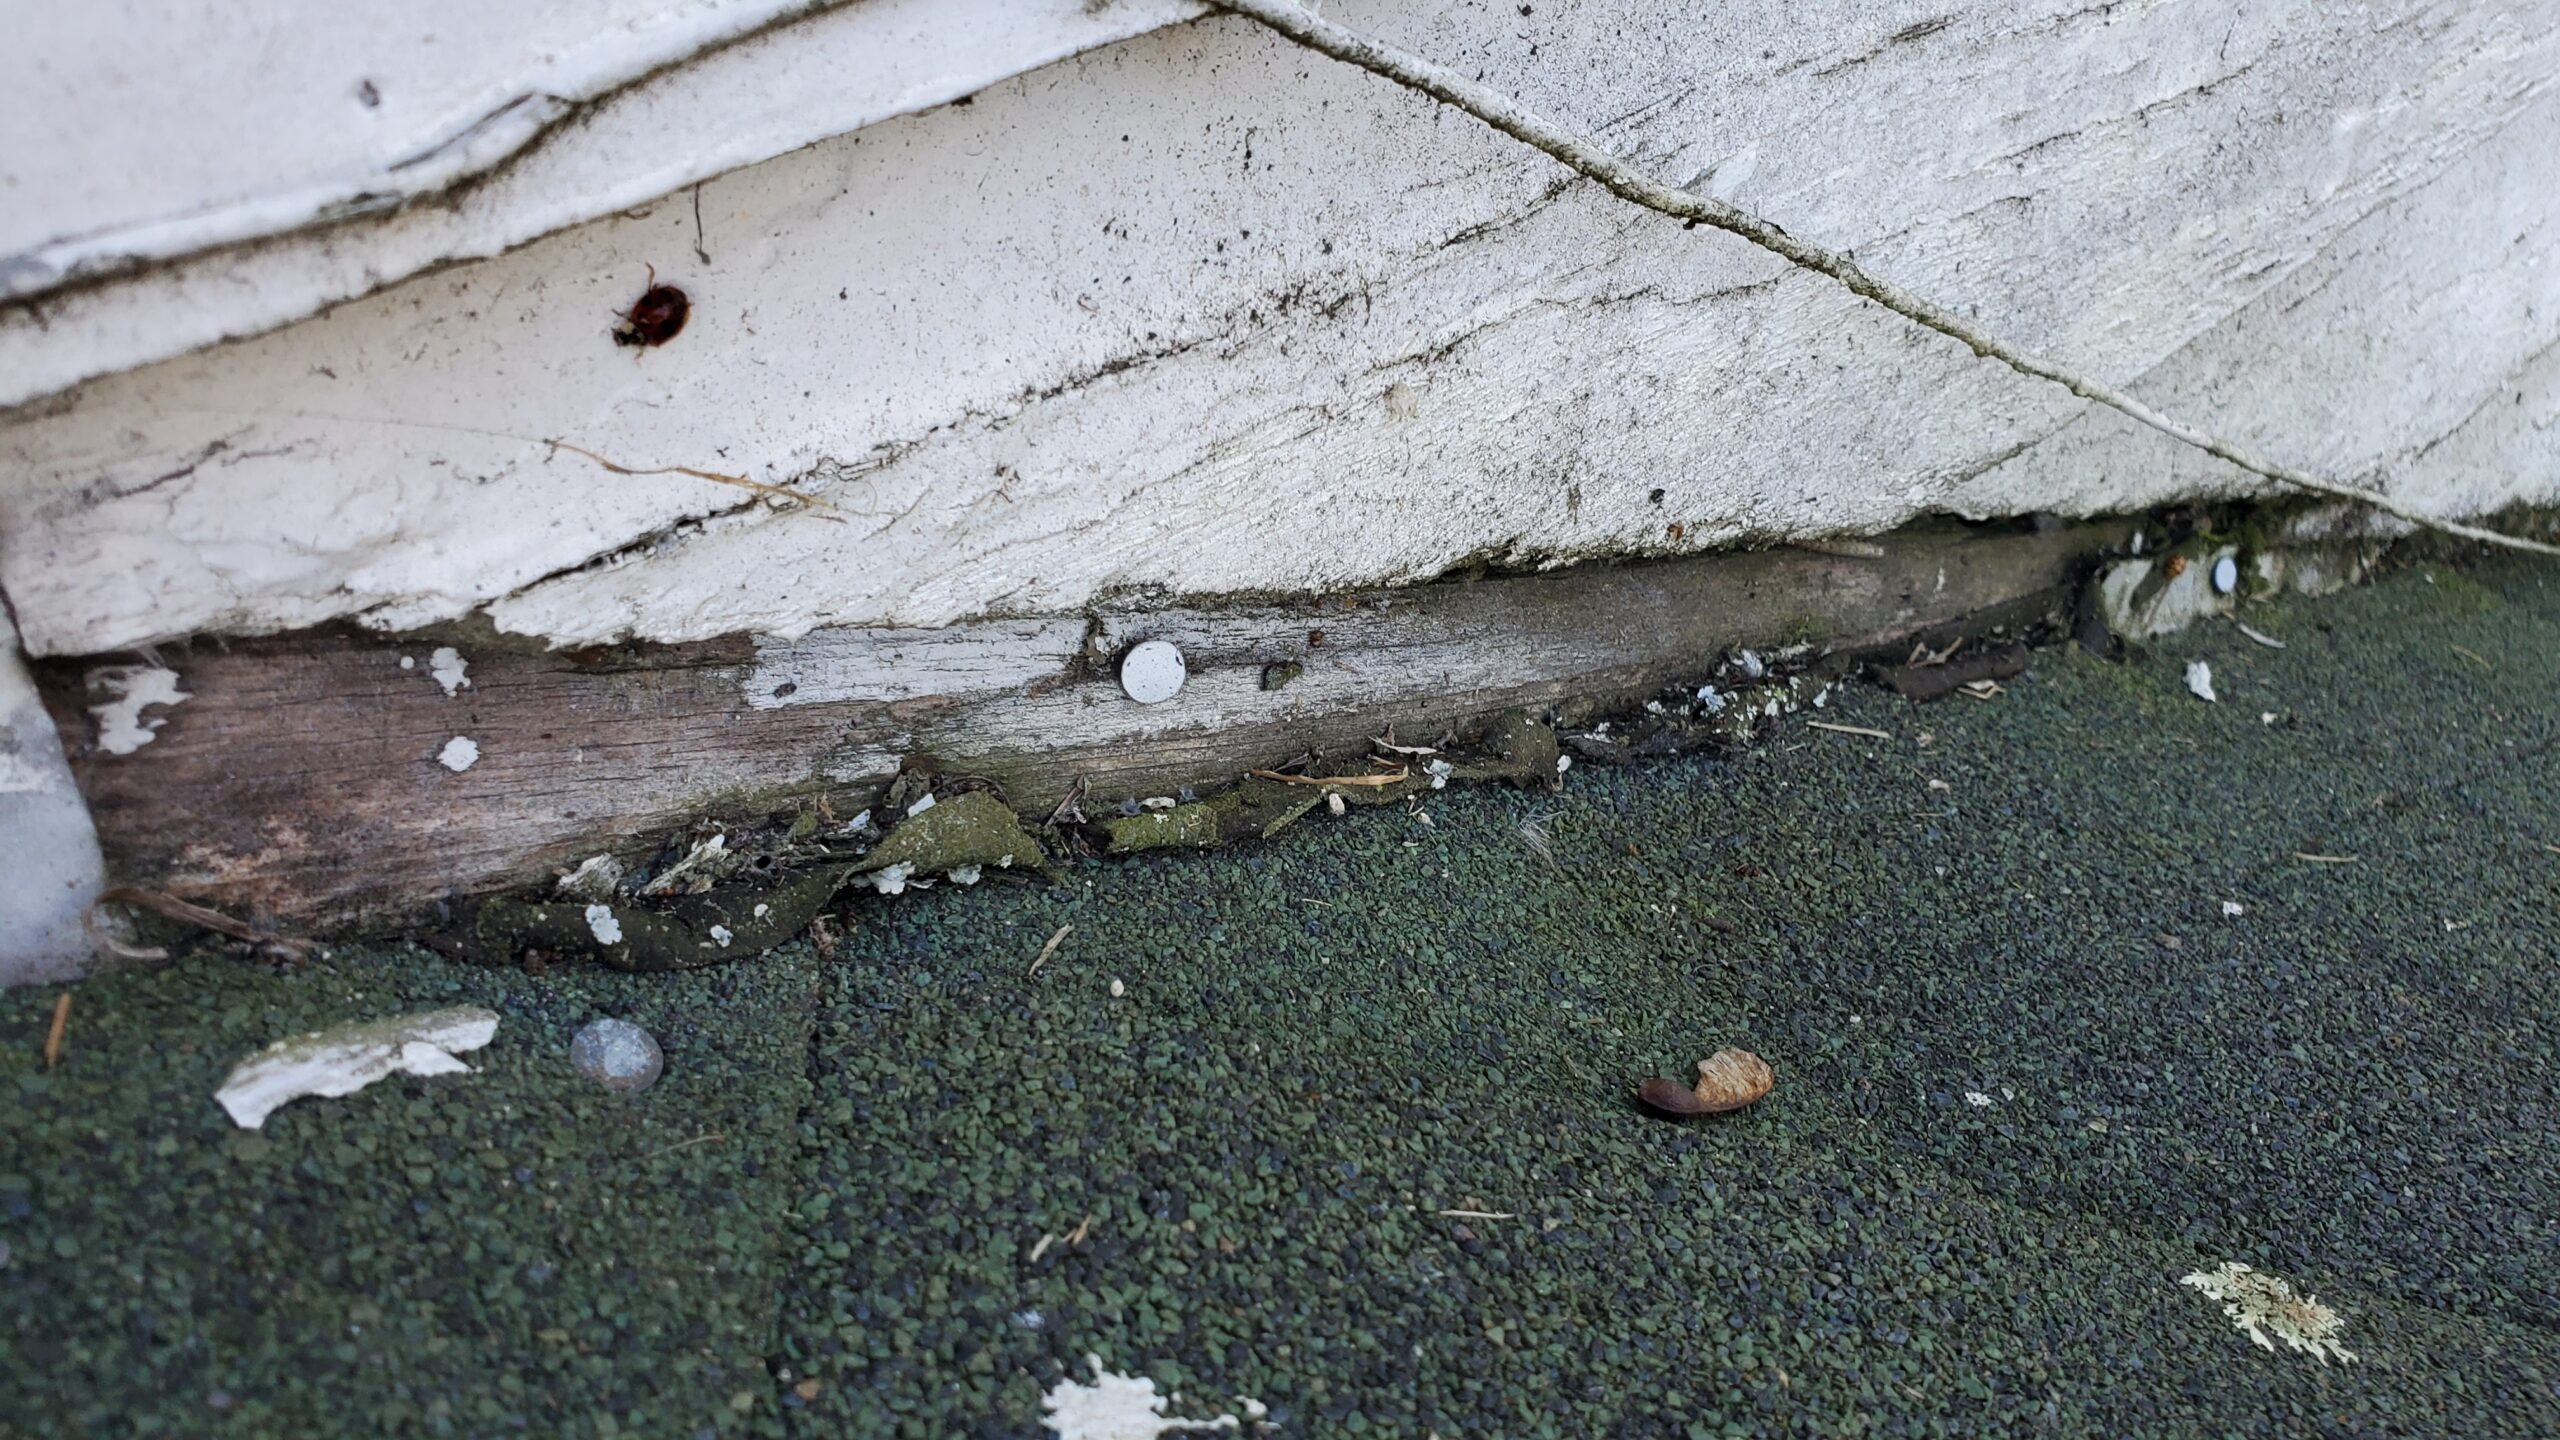 This is a picture of shingles butted up against a wall with siding on it.